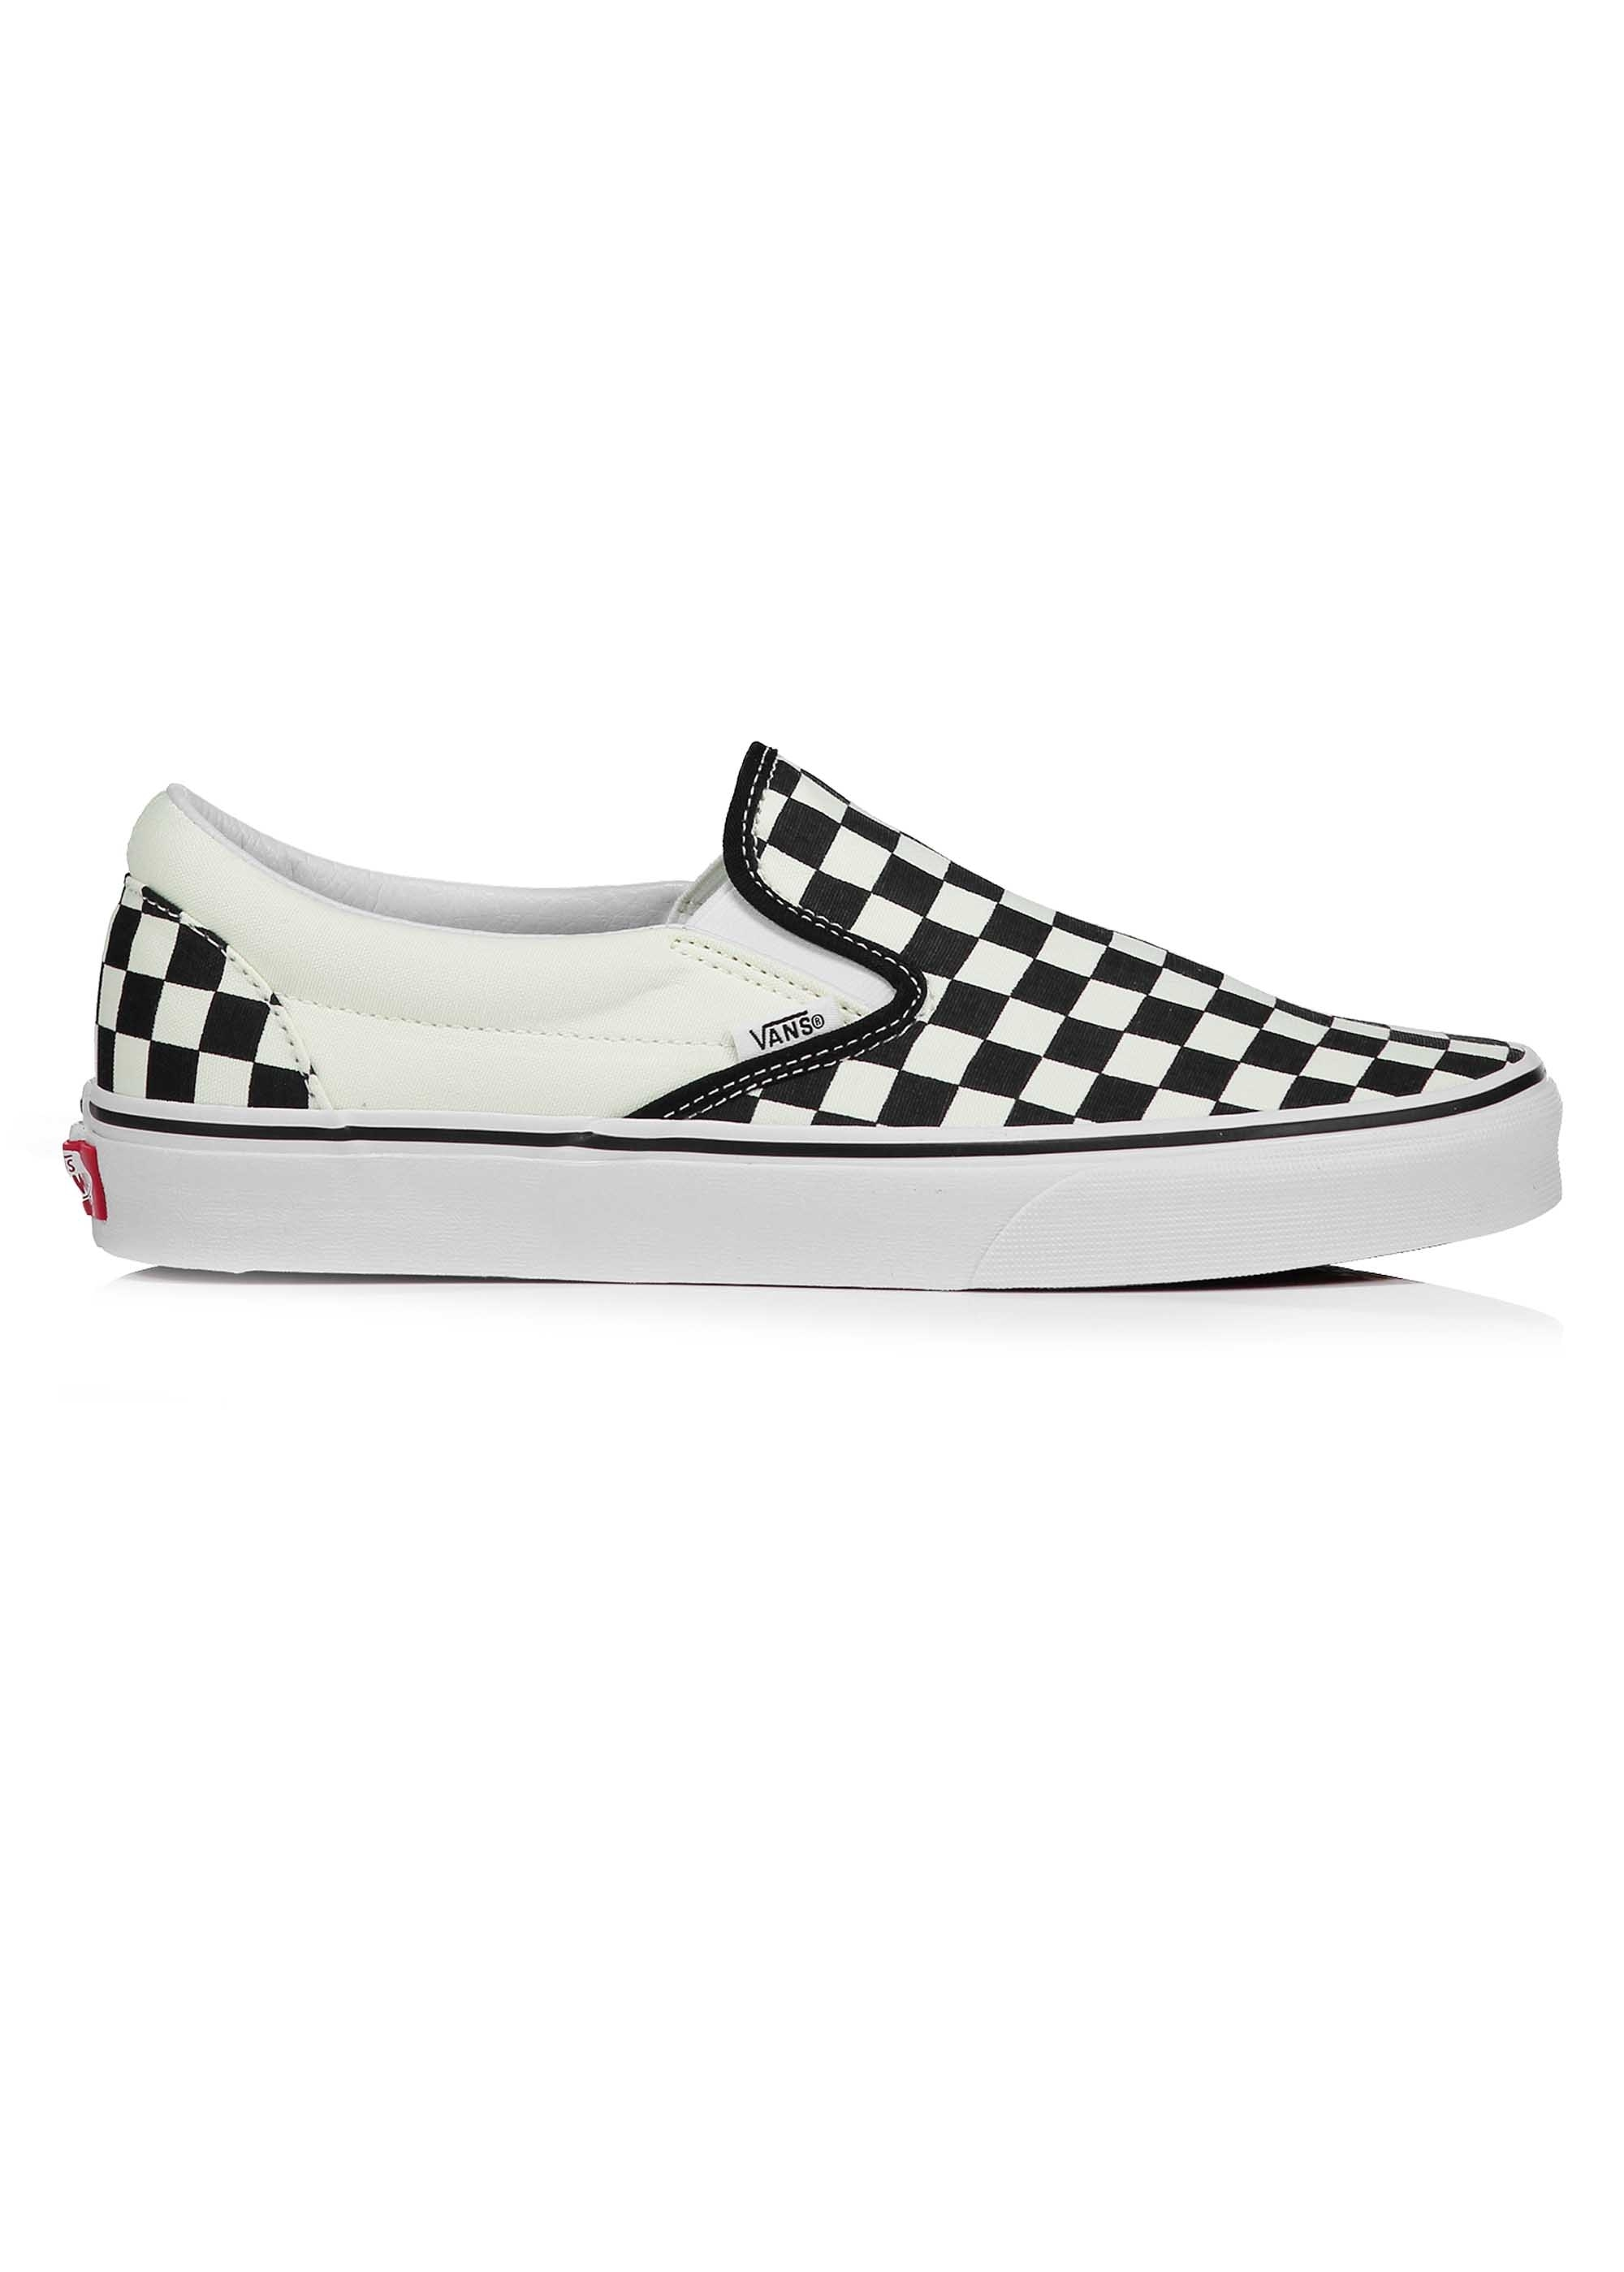 Vans Classic Slip-On - Checkerboard Black White